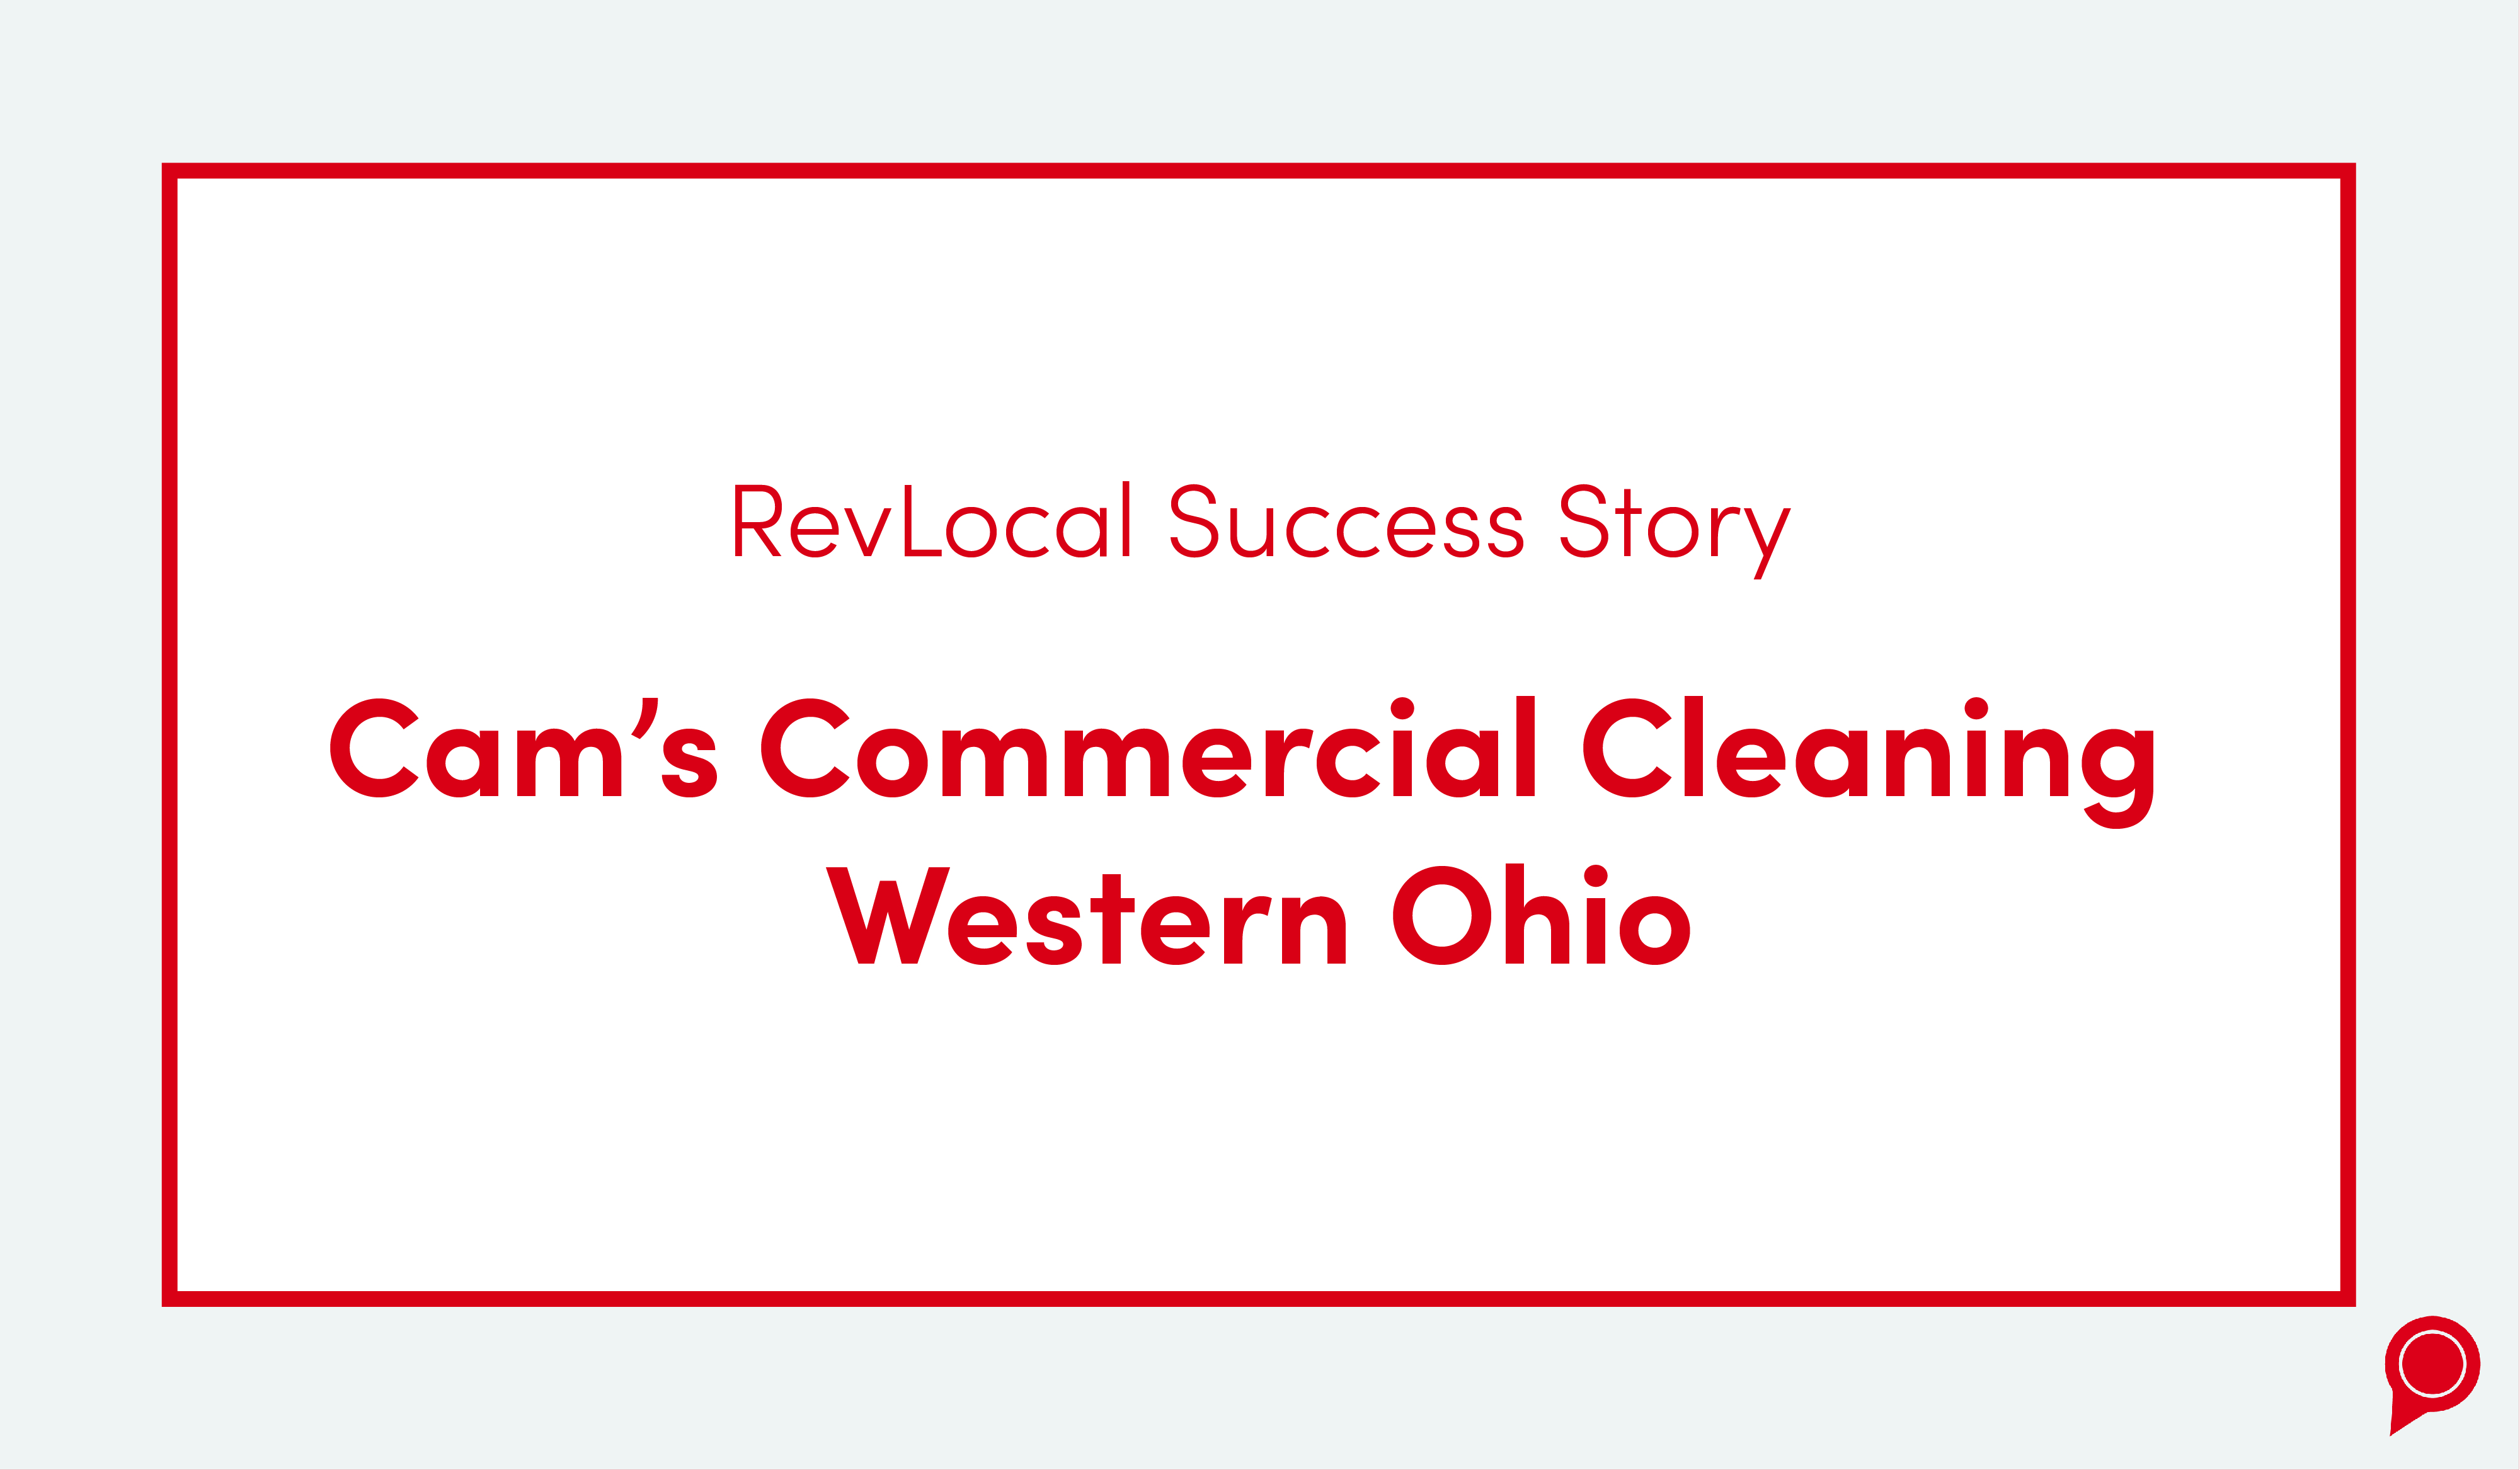 Cam's Commercial Cleaning Success Story